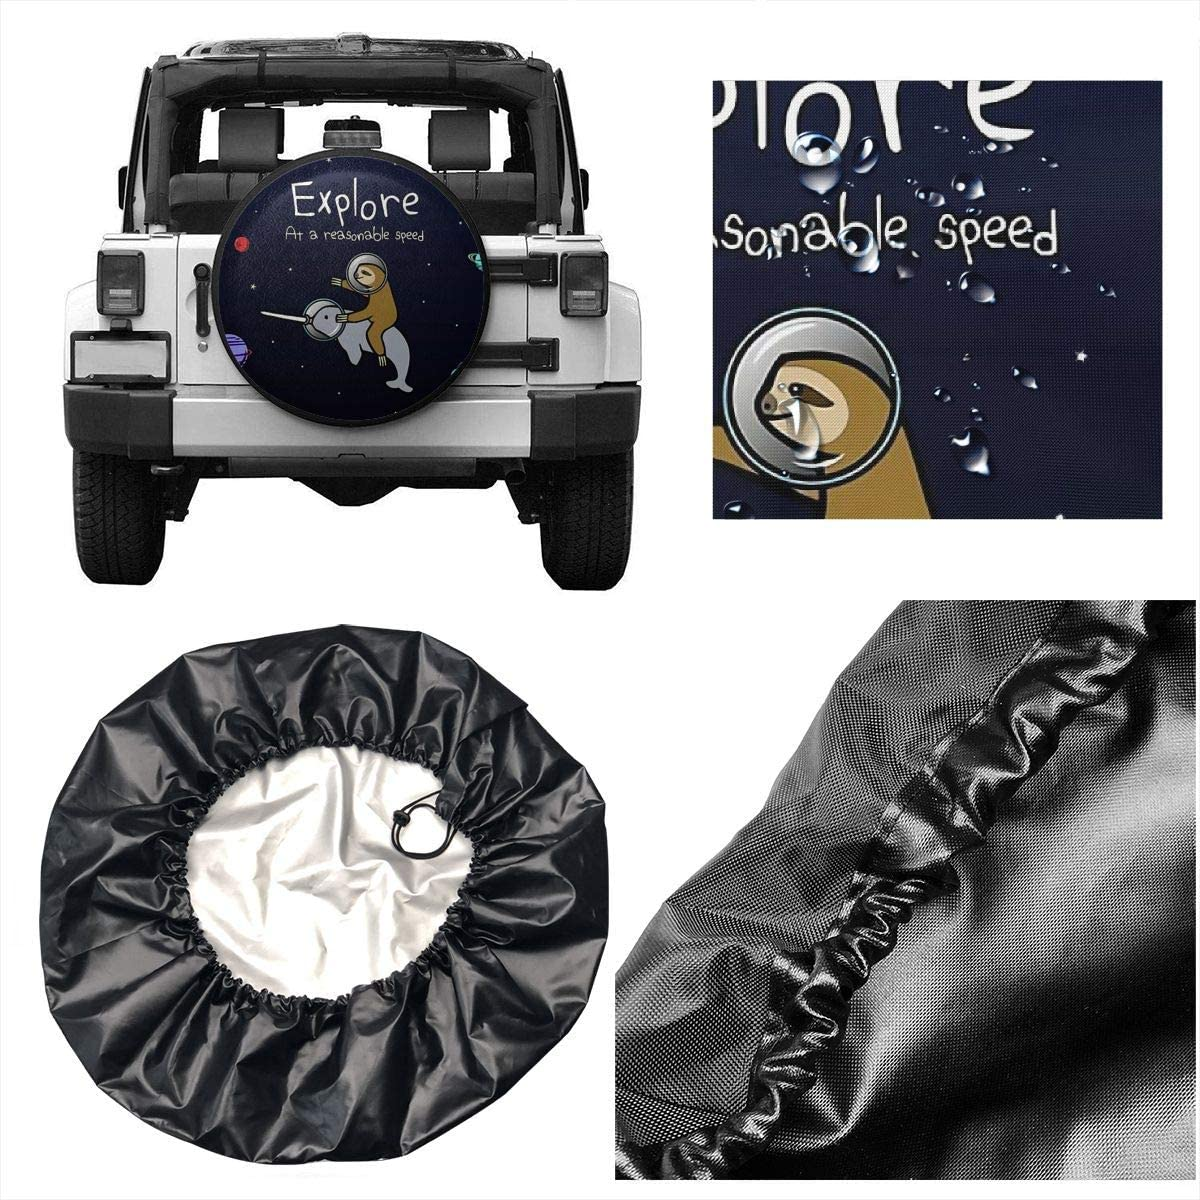 BWBFVPW Spare Tire Cover Sloth Riding Narwhal in Space Universal Waterproof Wheel Cover for RV SUV Trailer Fit 27.5-29.5 inches Tire Diameters